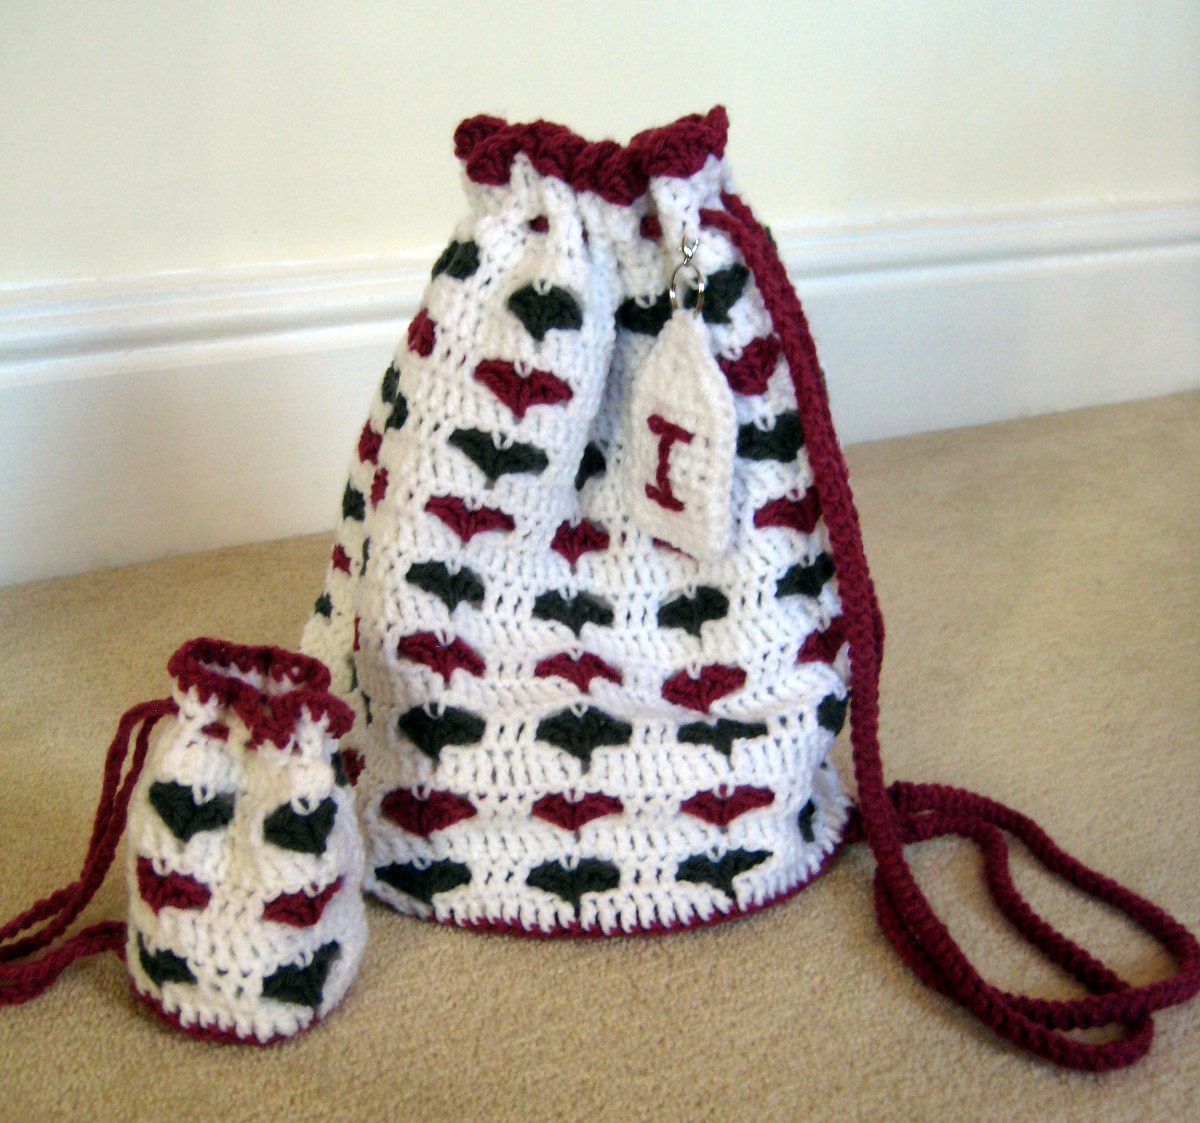 Crochet Small Bag : Little Hearts Drawstring Bags Make My Day Creative